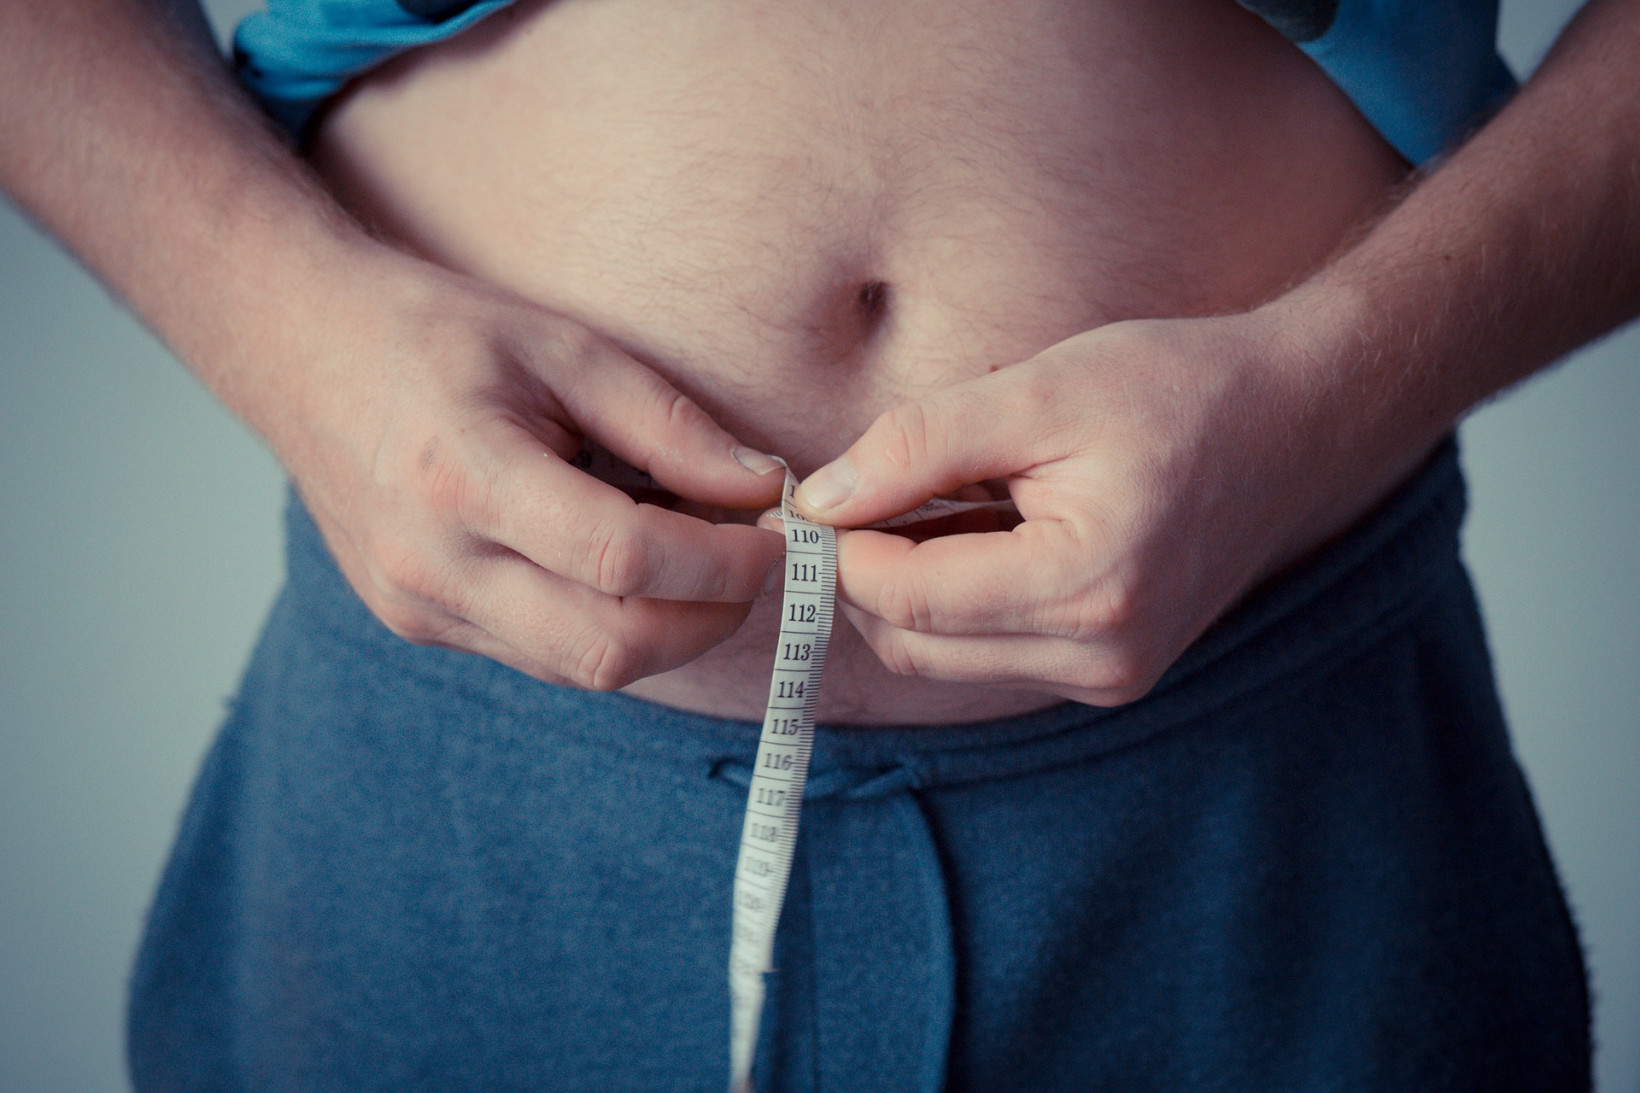 Researchers have invented a method to prevent (or reverse) obesity